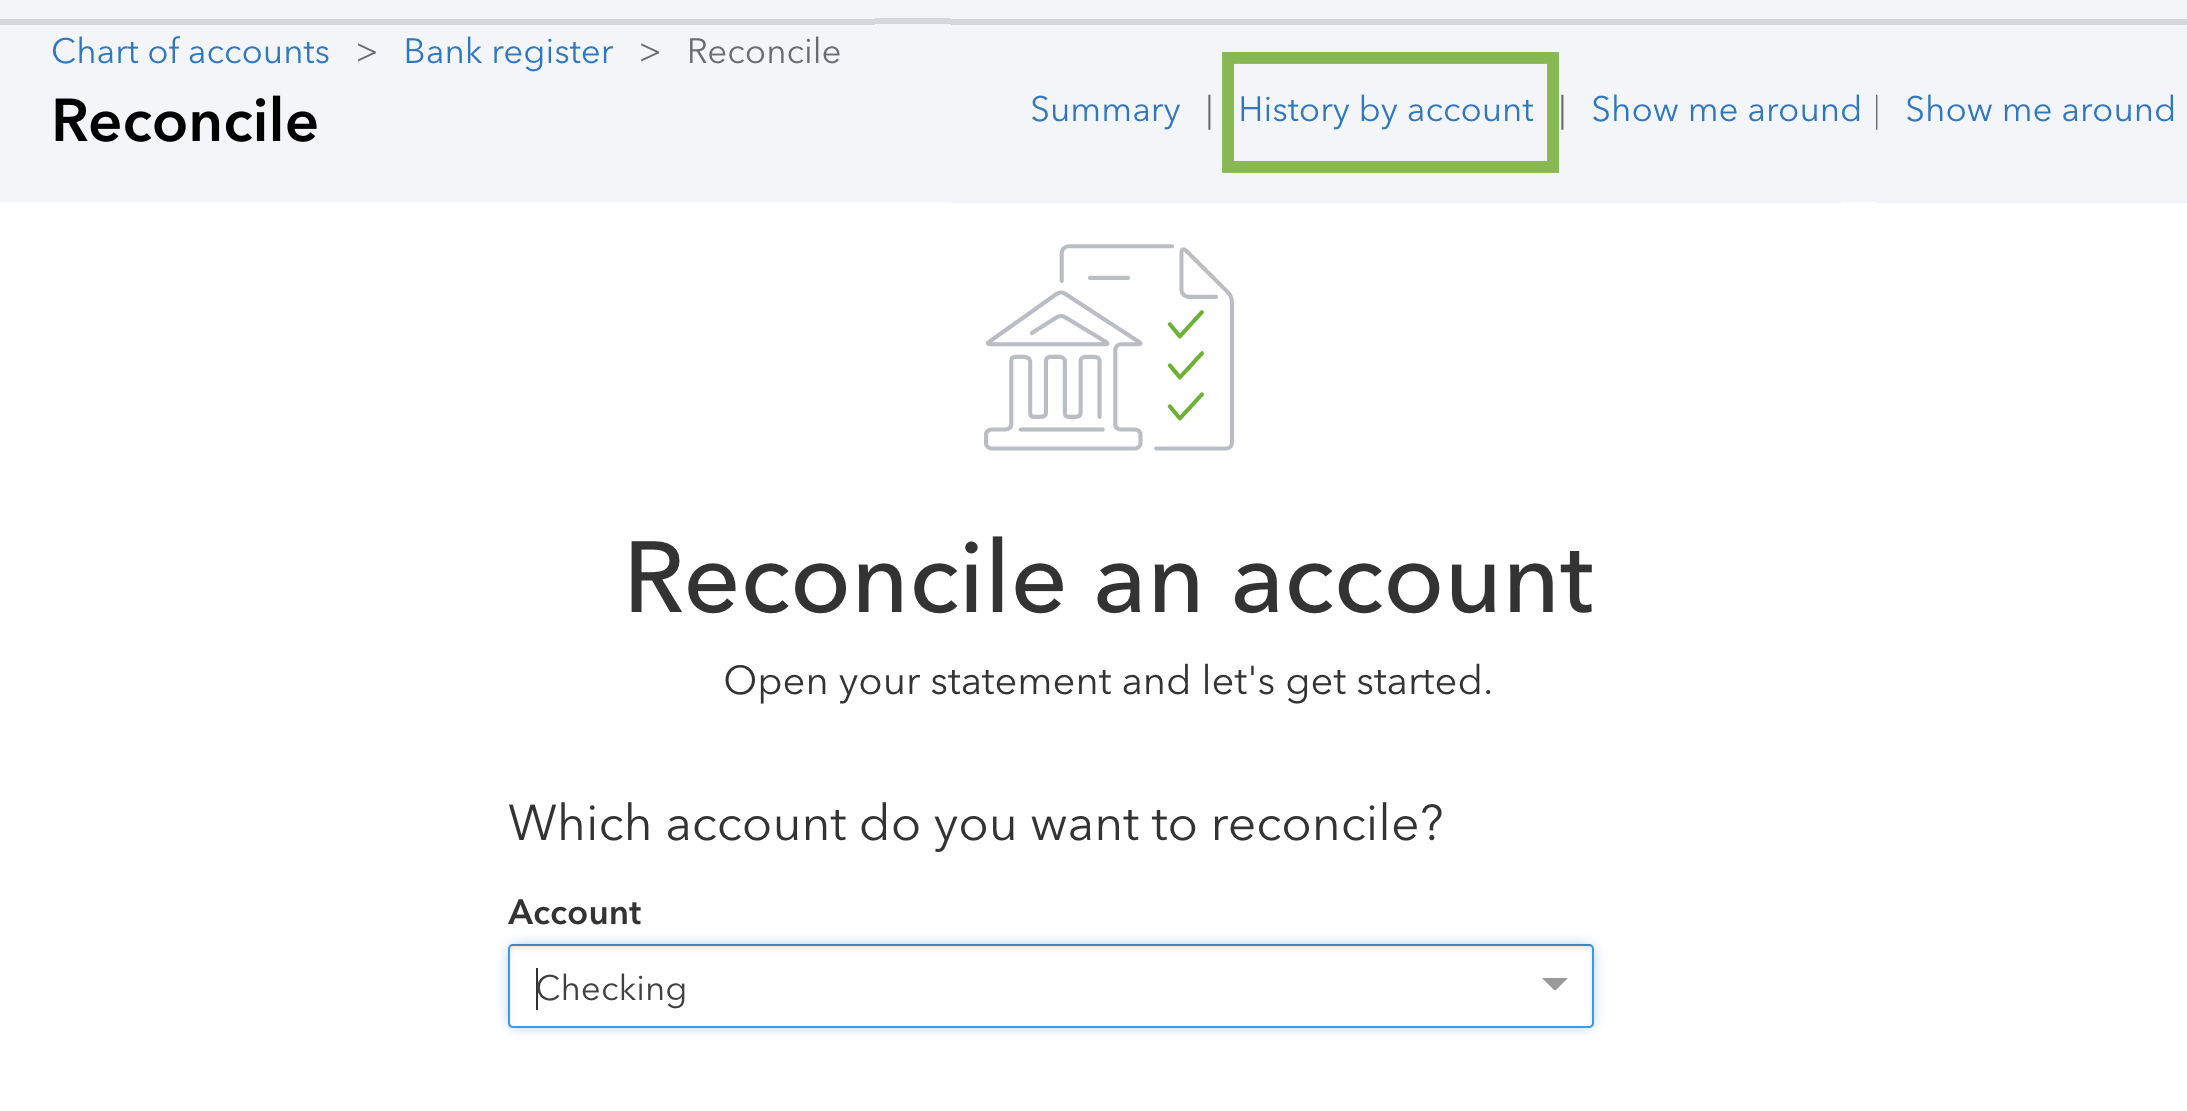 This is an image of the main reconcile an account screen, highlighting the link to History by account